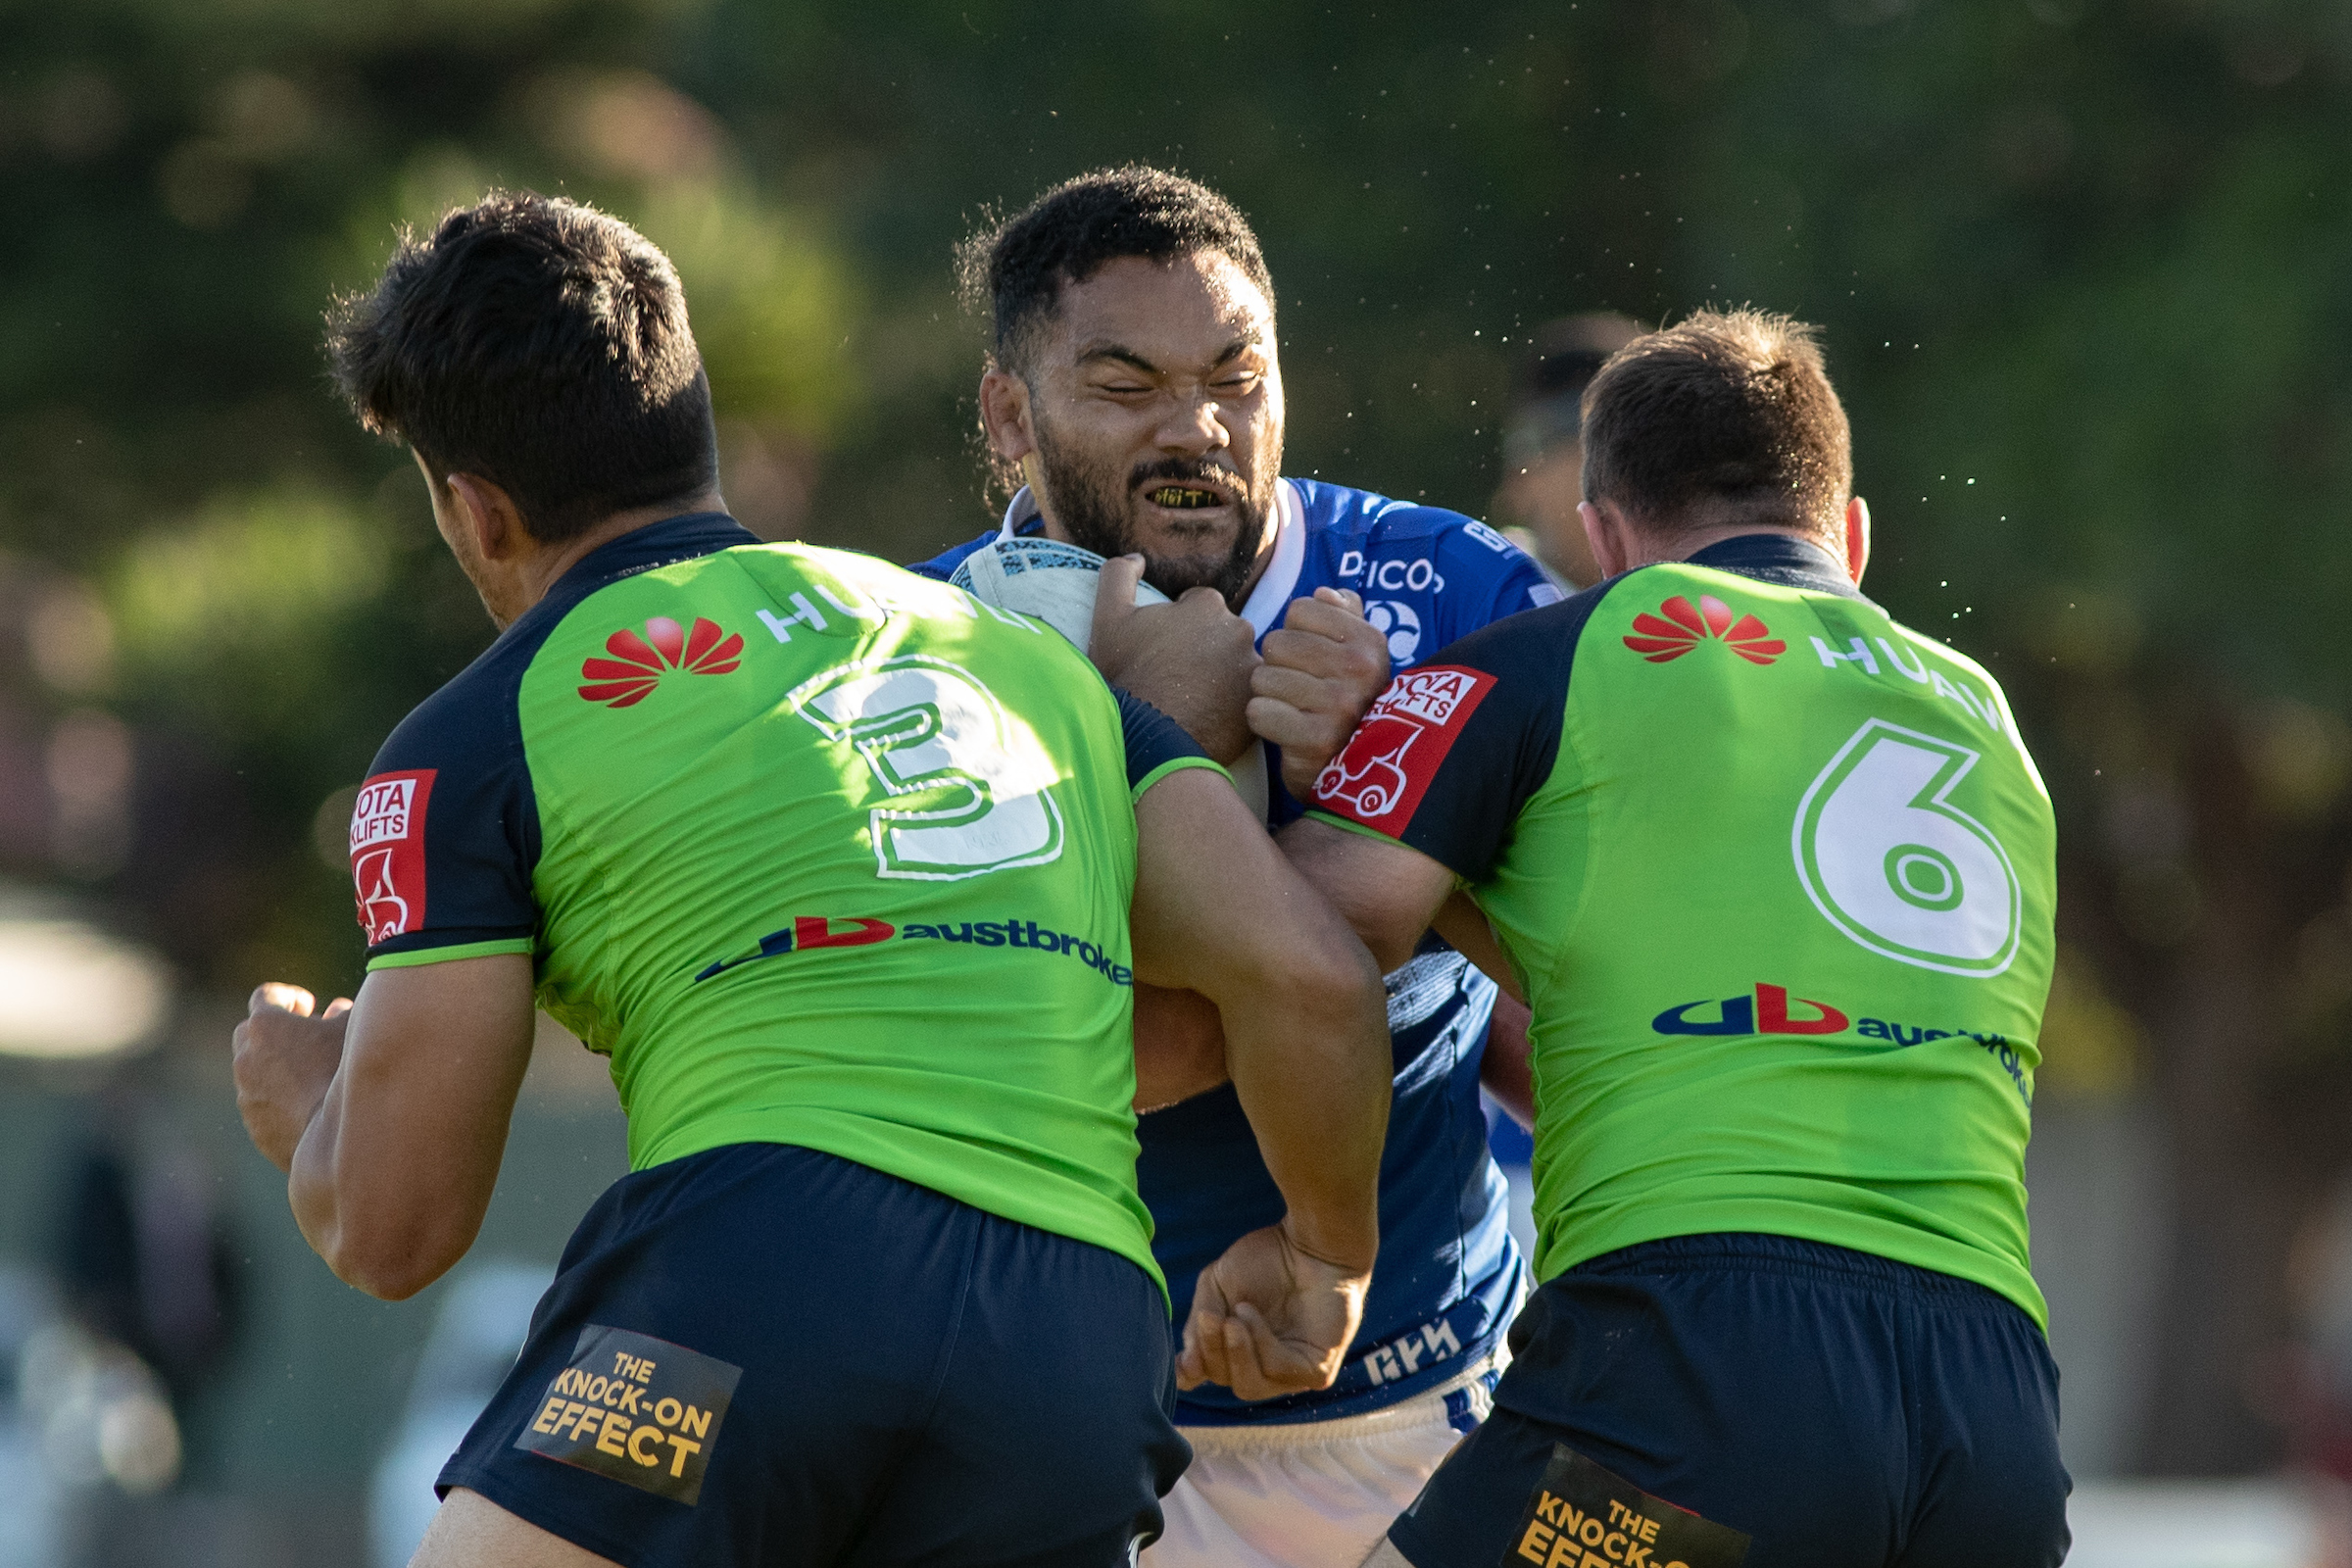 June 5, 2021 - Marrickville, NSW, Australia, Siosifa Talakai of the Newtown Jets during the Round 13 NSW Cup match between the Newtown Jets and Canberra Raiders Henson Park in Marrickville, NSW. (Mario Facchini/mafphotography)